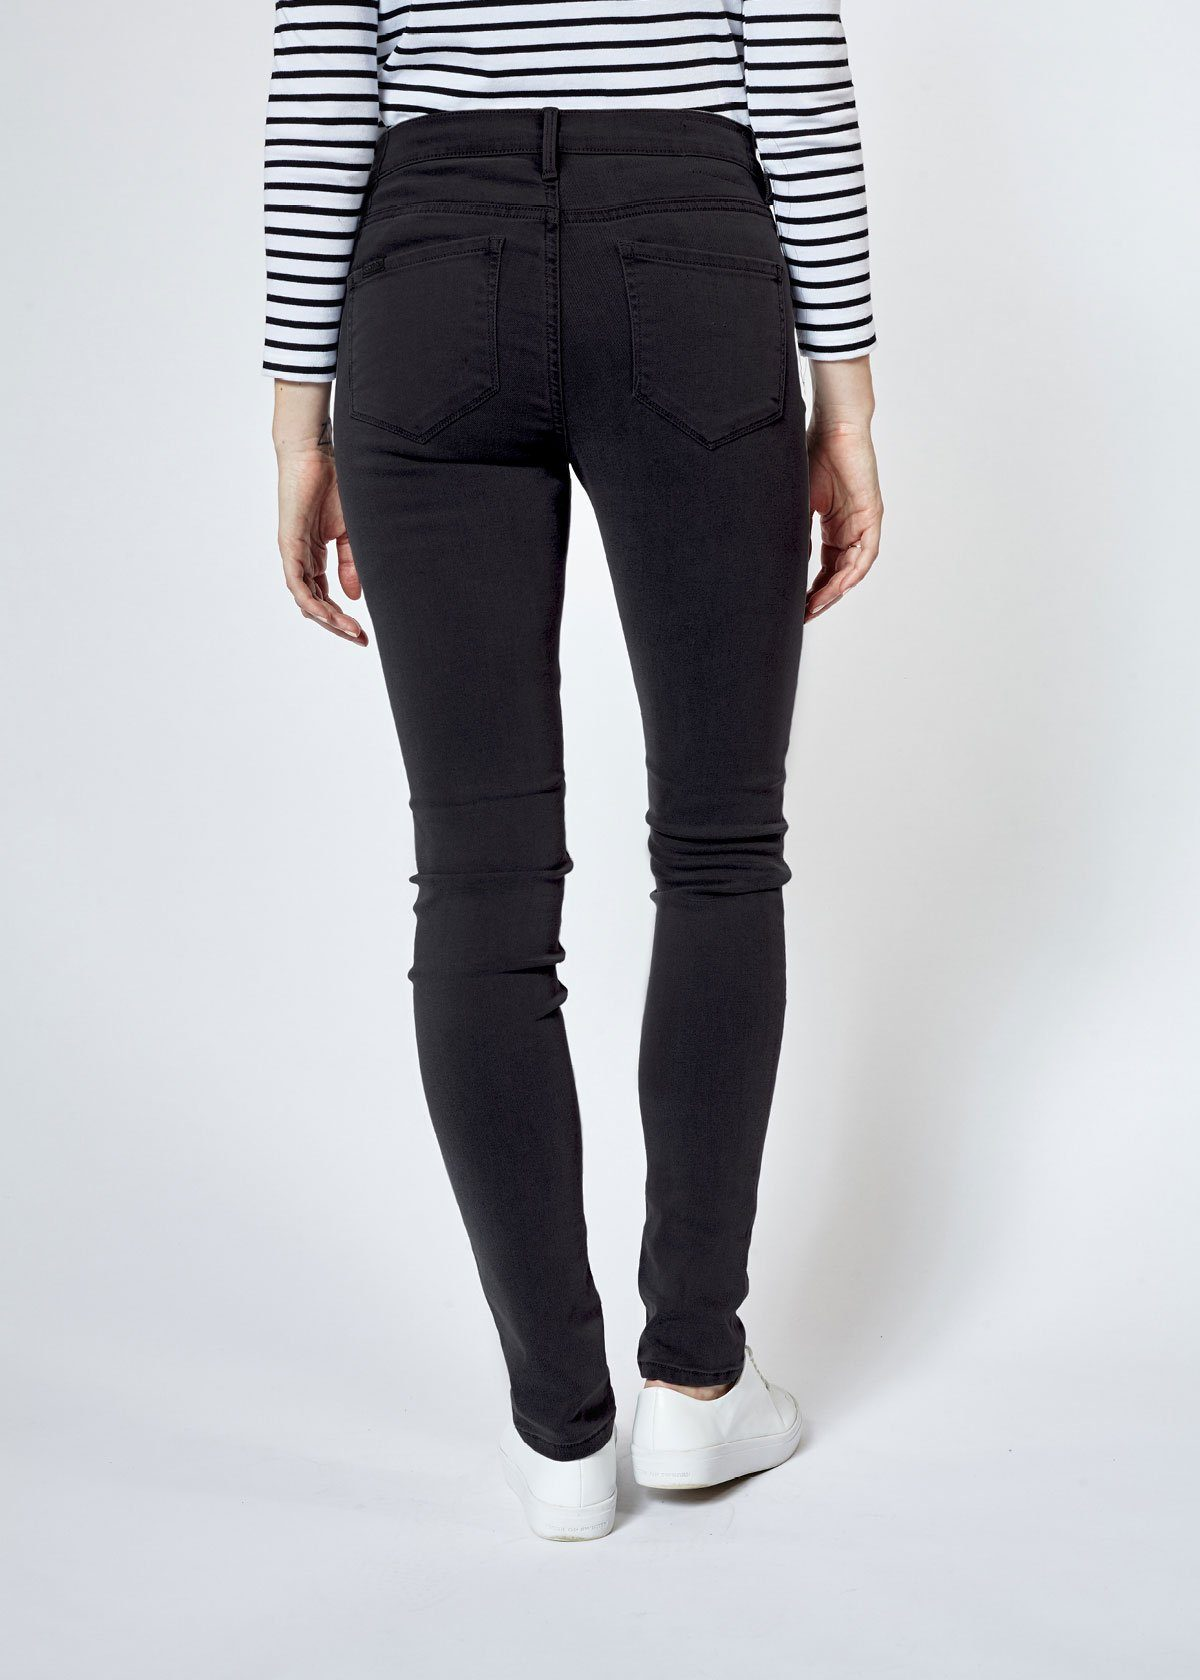 Dish by DUER Pant Skinny - Black